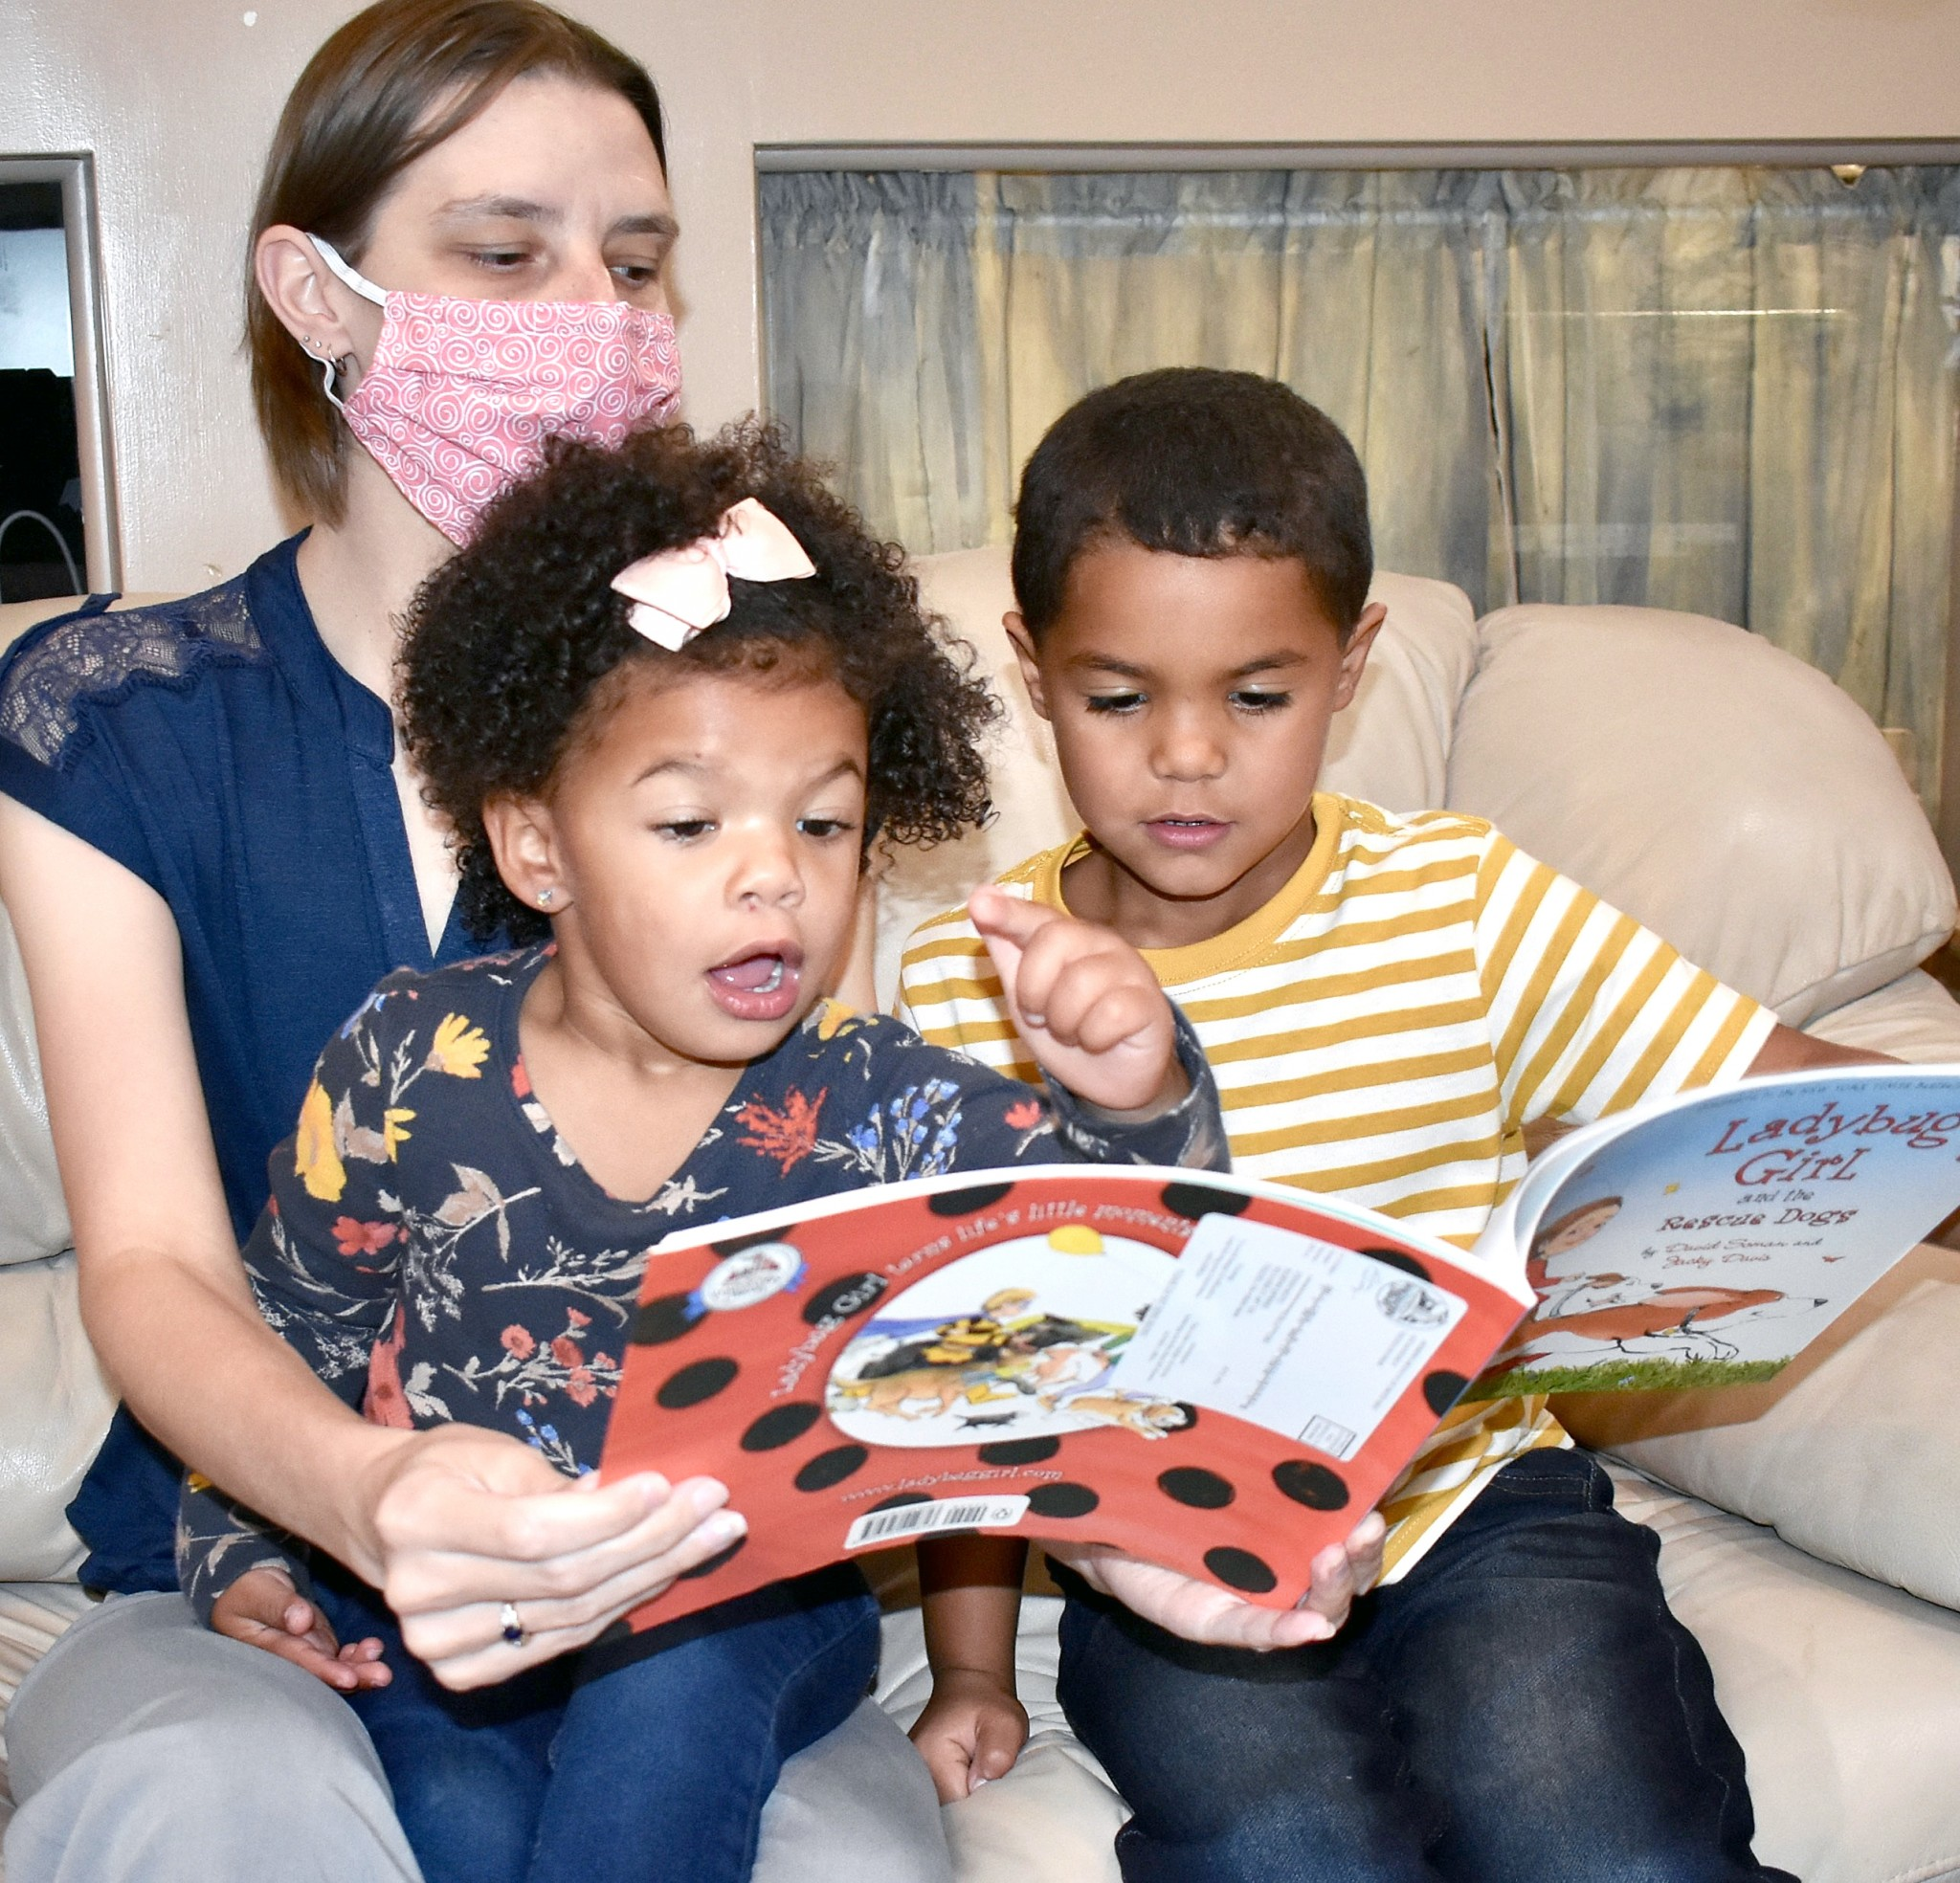 April Schalk, Office Manager of United Way in Ottawa County, reads an Imagination Library book to young family friends, Ellieyonna (2) and Eric (4) Buckley. (Submitted photo)